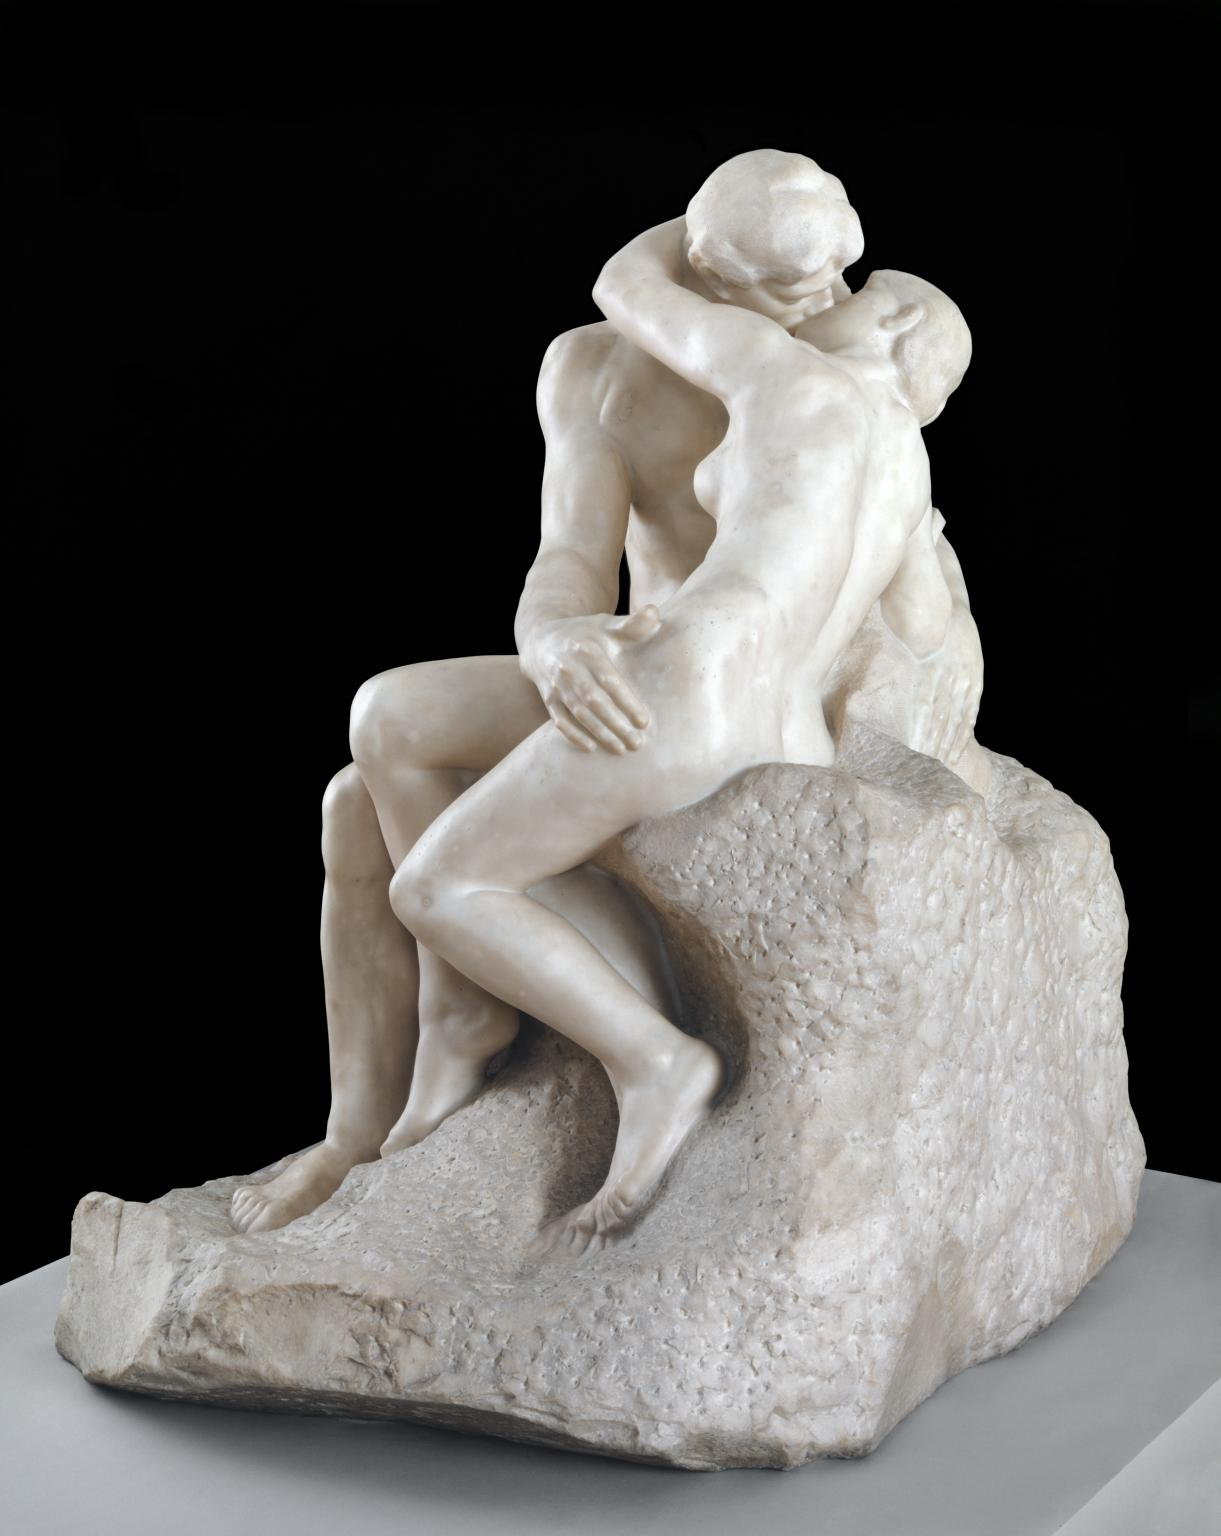 The Kiss, 1901-04, Auguste Rodin, Pentelican marble, (Image courtesy of the Tate)